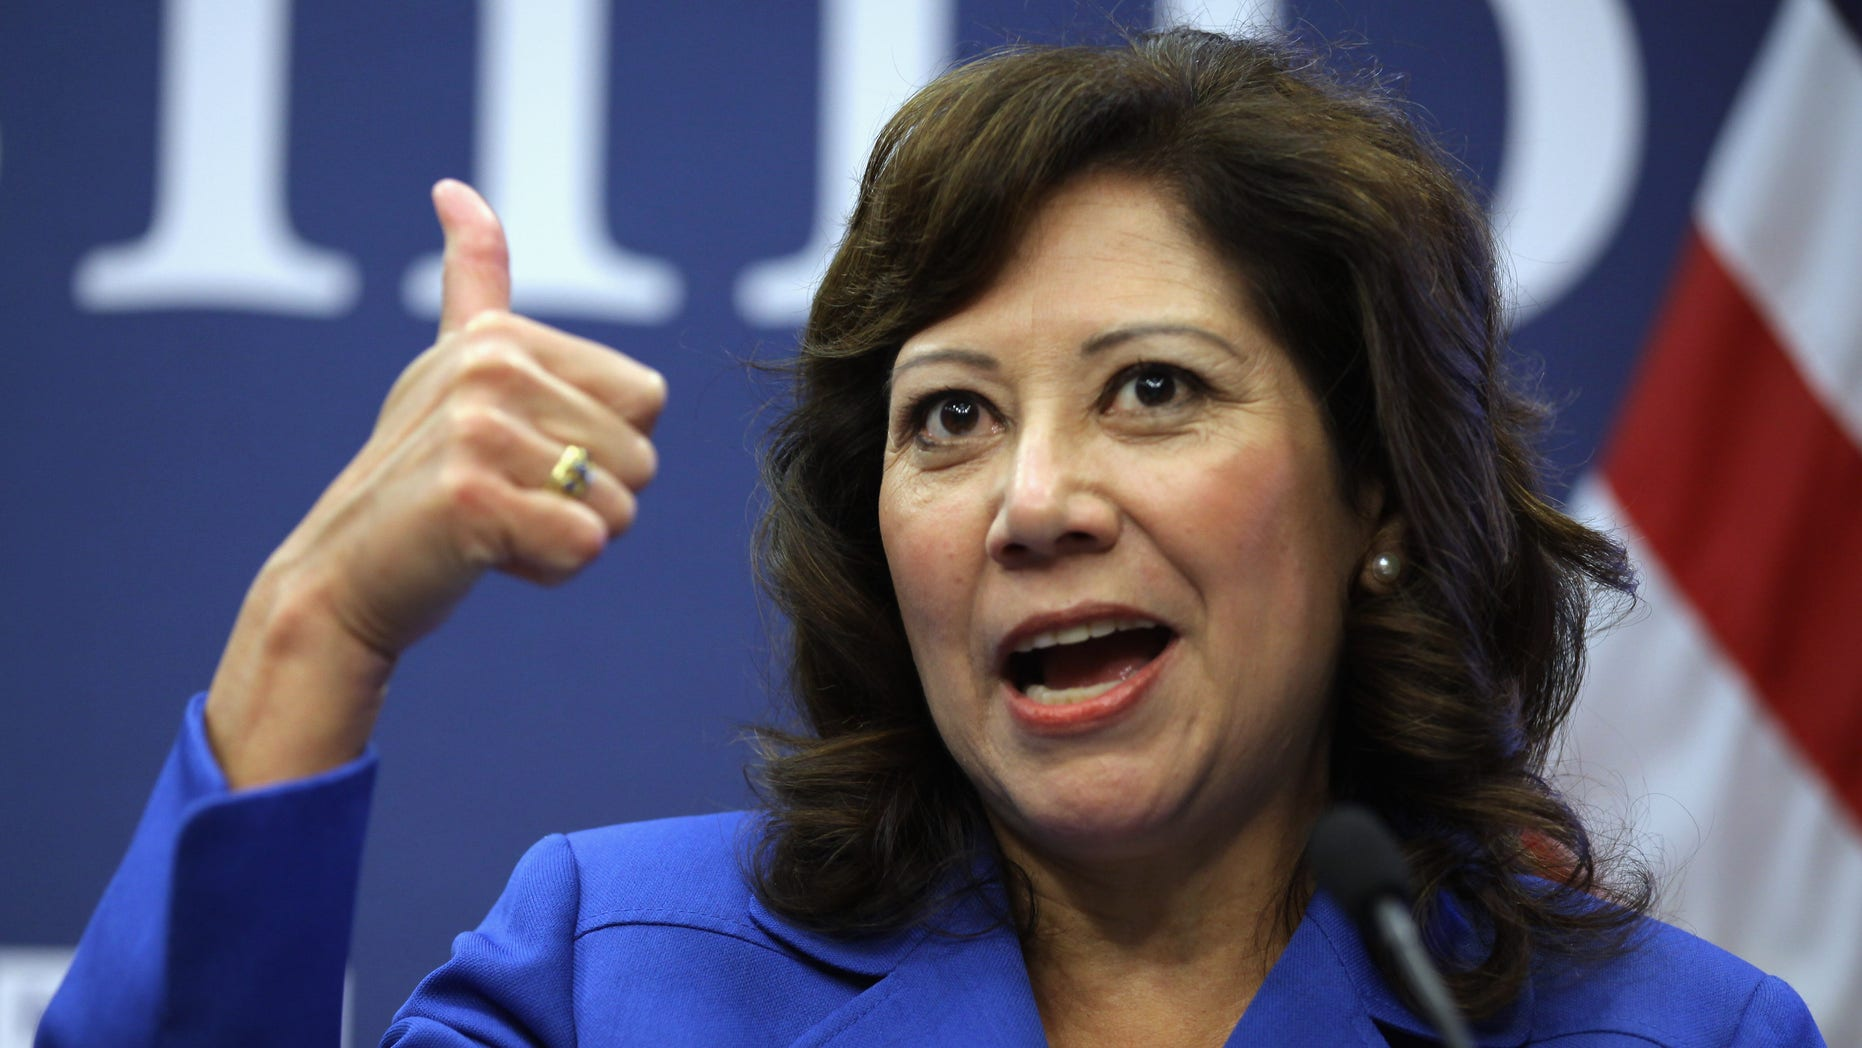 """WASHINGTON, DC - OCTOBER 20:  U.S. Labor Secretary Hilda Solis gives a thumbs-up during a news conference to announce a partnership between Facebook, the National Association of Colleges and Employers, DirectEmployers Association and the National Association of State Workforce Agencies aimed at connecting Americans with jobs October 20, 2011 in Washington, DC. """"By leveraging the power of the social Web, this initiative will provide immediate, meaningful and ready-to-use information for job seekers and employers,"""" Solis said.  (Photo by Chip Somodevilla/Getty Images)"""